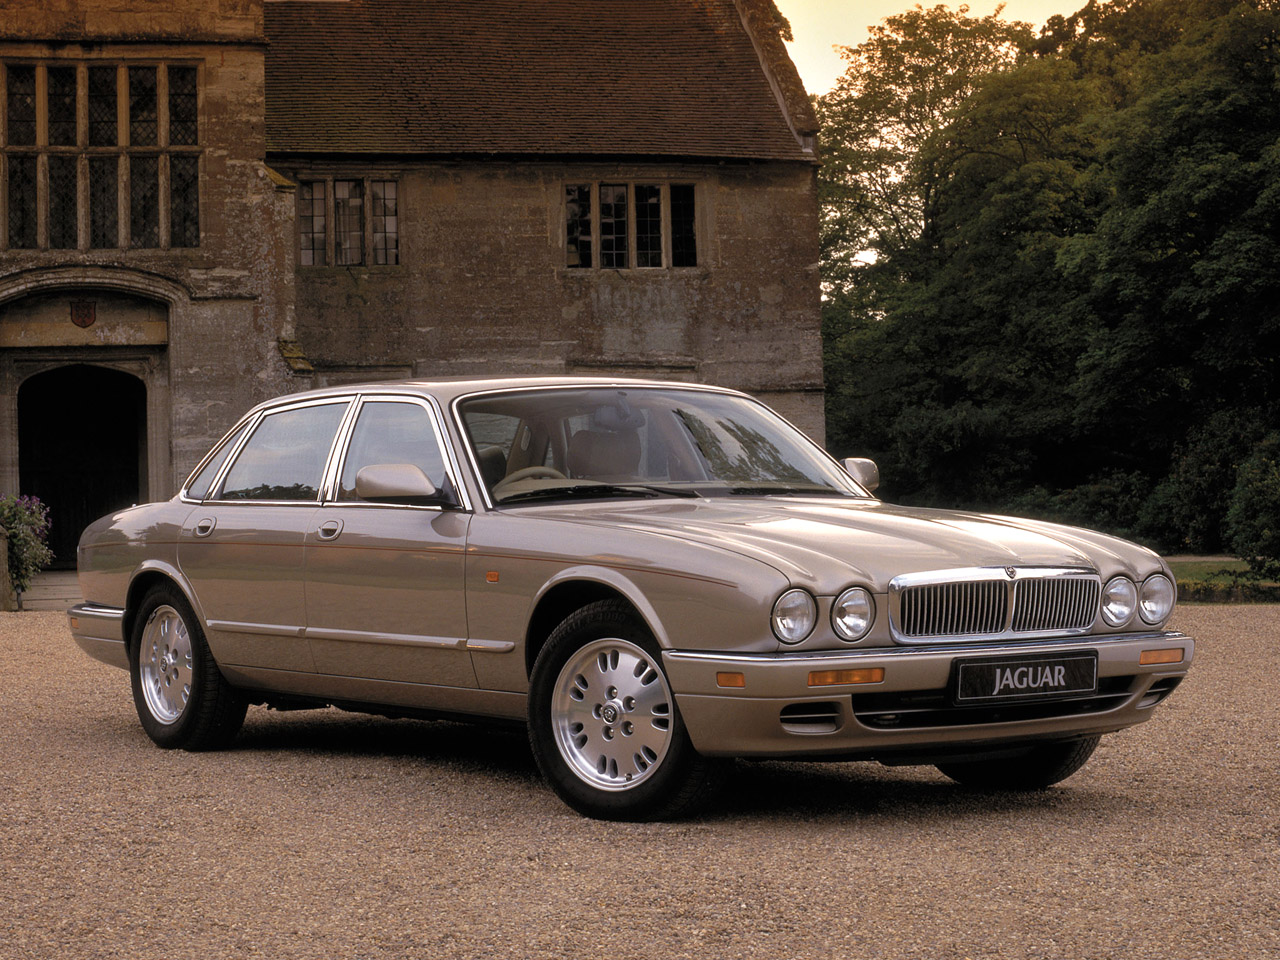 Jaguar XJ6 Sovereign Information Desktop Background